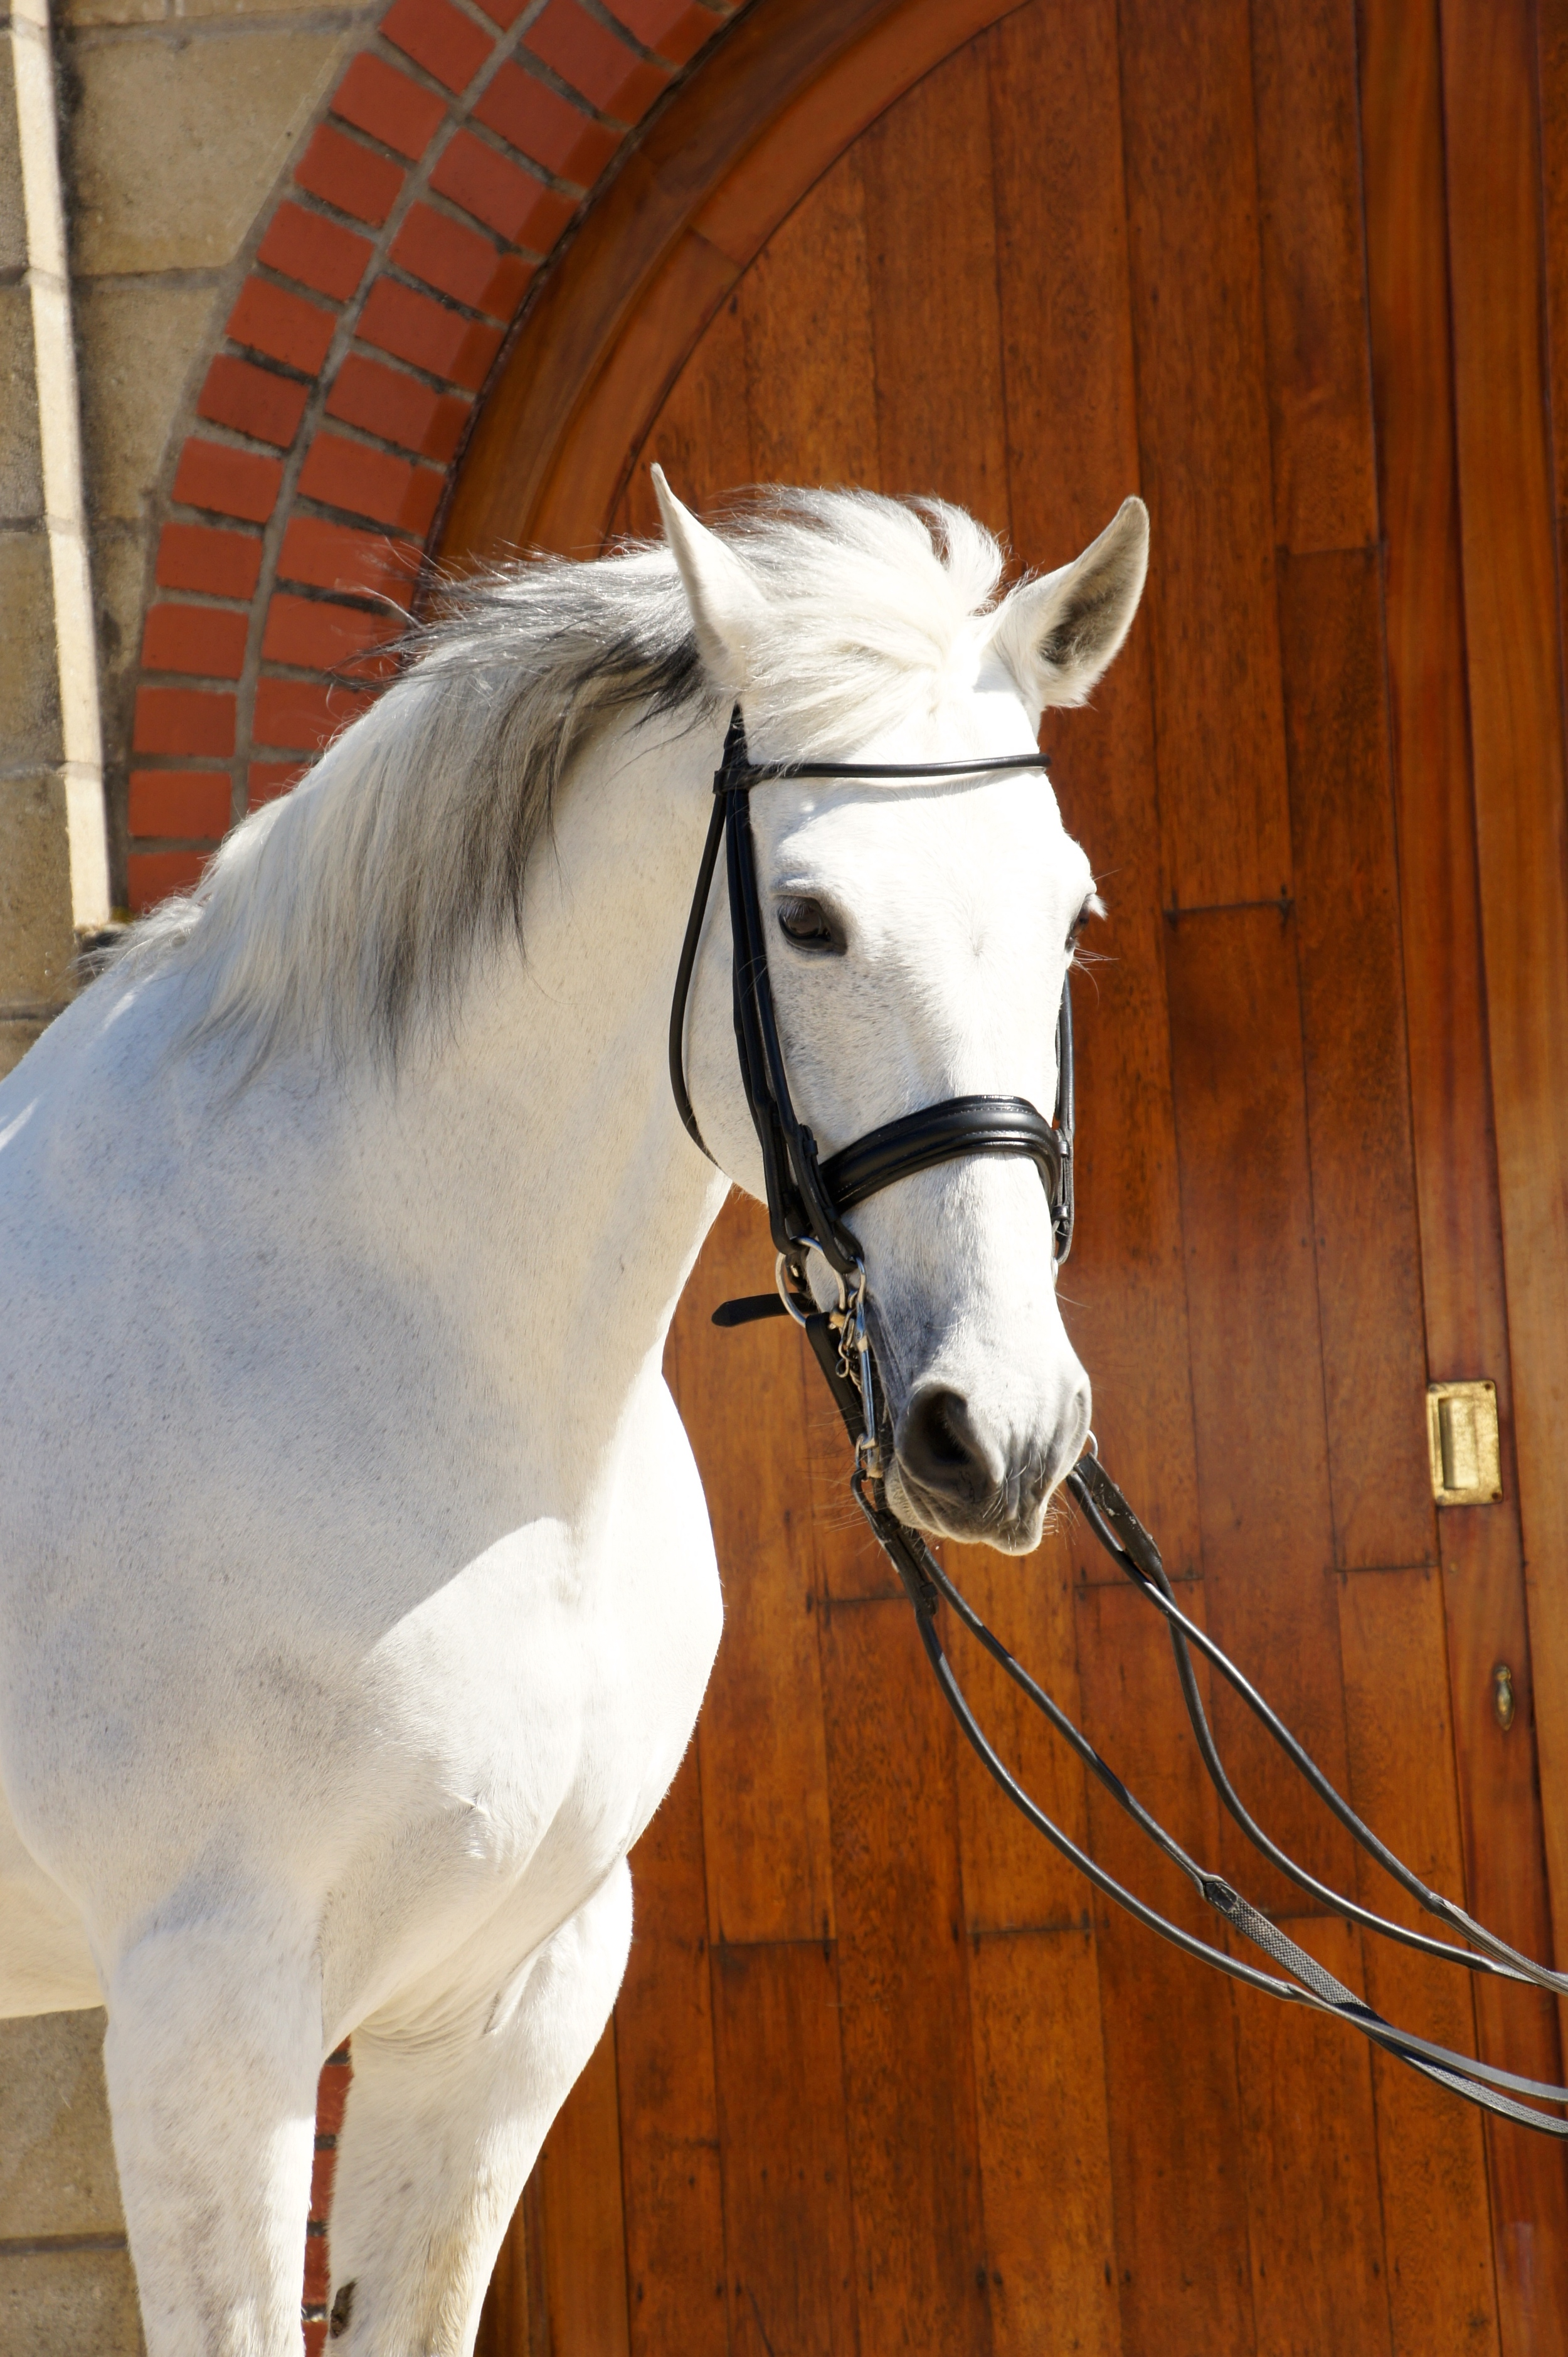 Hortelano XXV     Stable Name : Cookie  Colour : Grey  Height : 16.3  Sex : Gelding  Breeding :Andulusian  Country of Origin : Spain  Year Foaled :2001  level : Medium